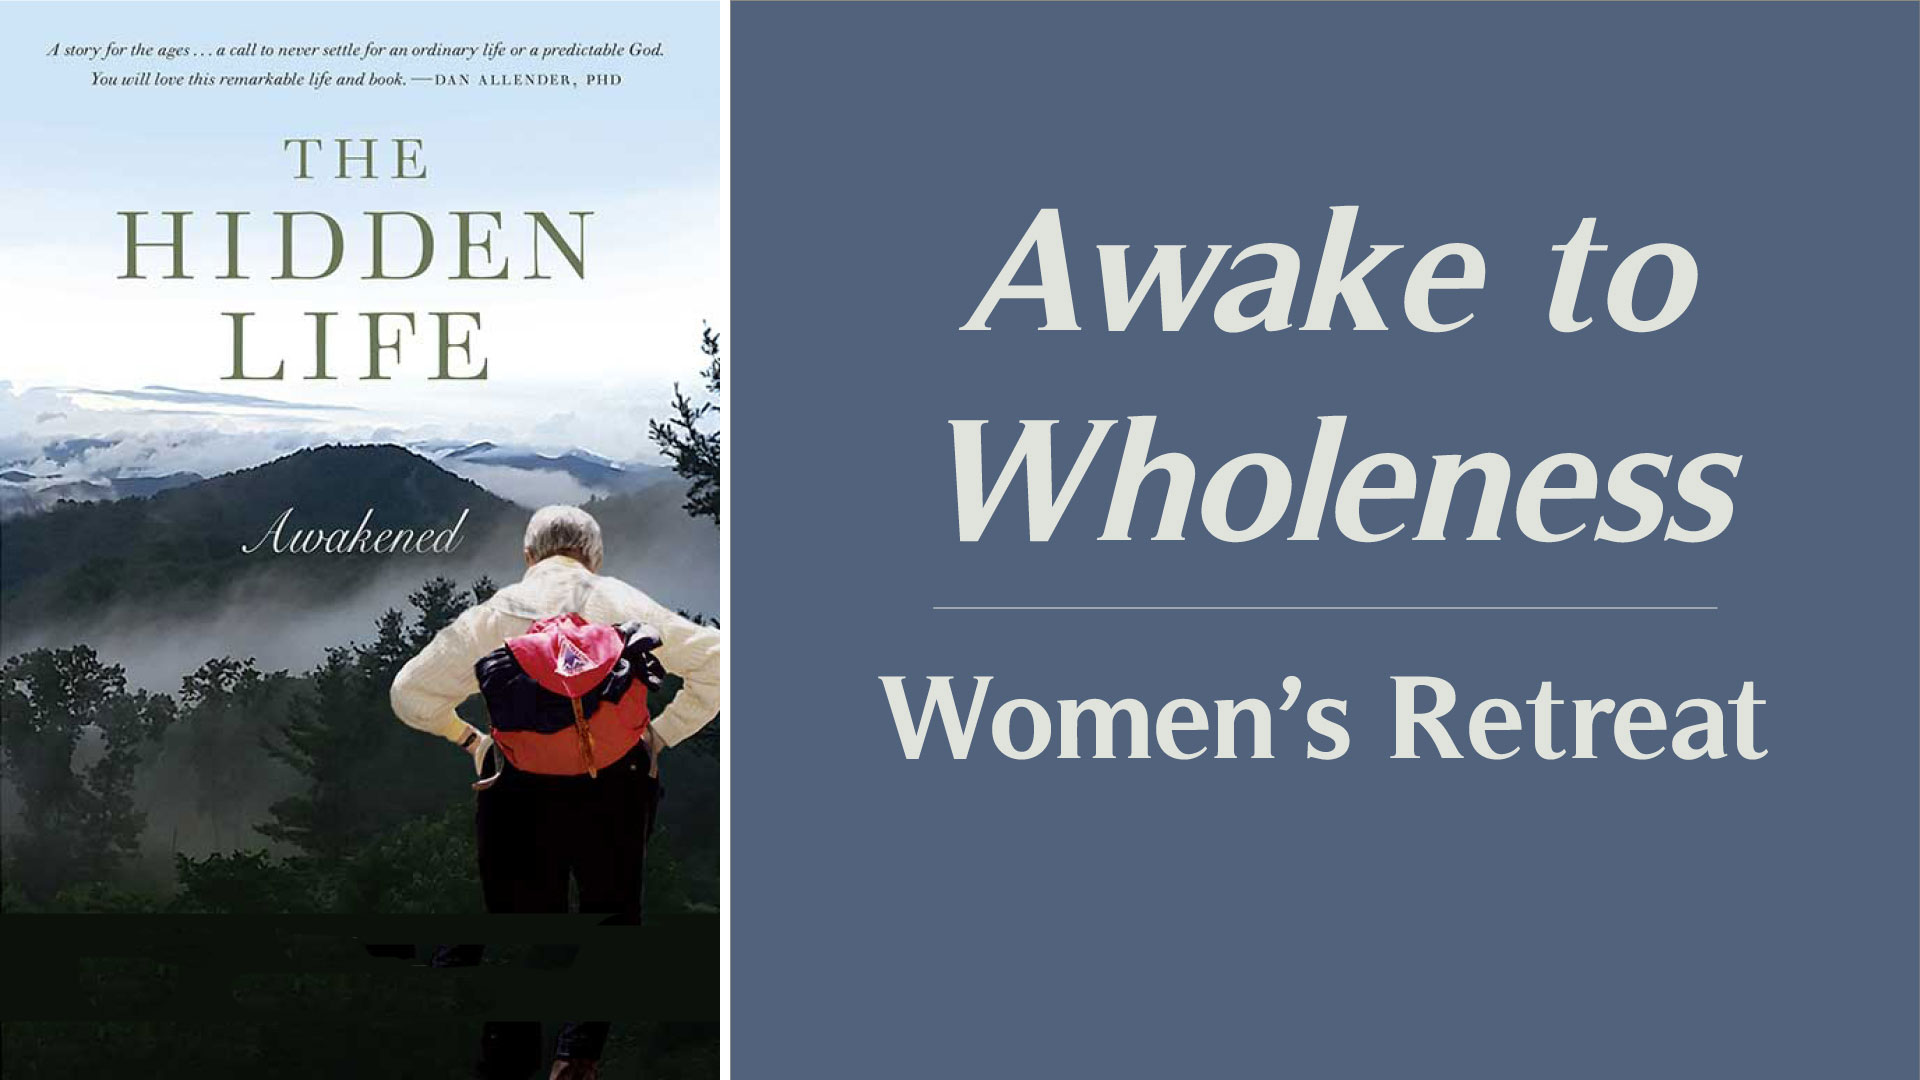 Awake to Wholeness Women's Retreat